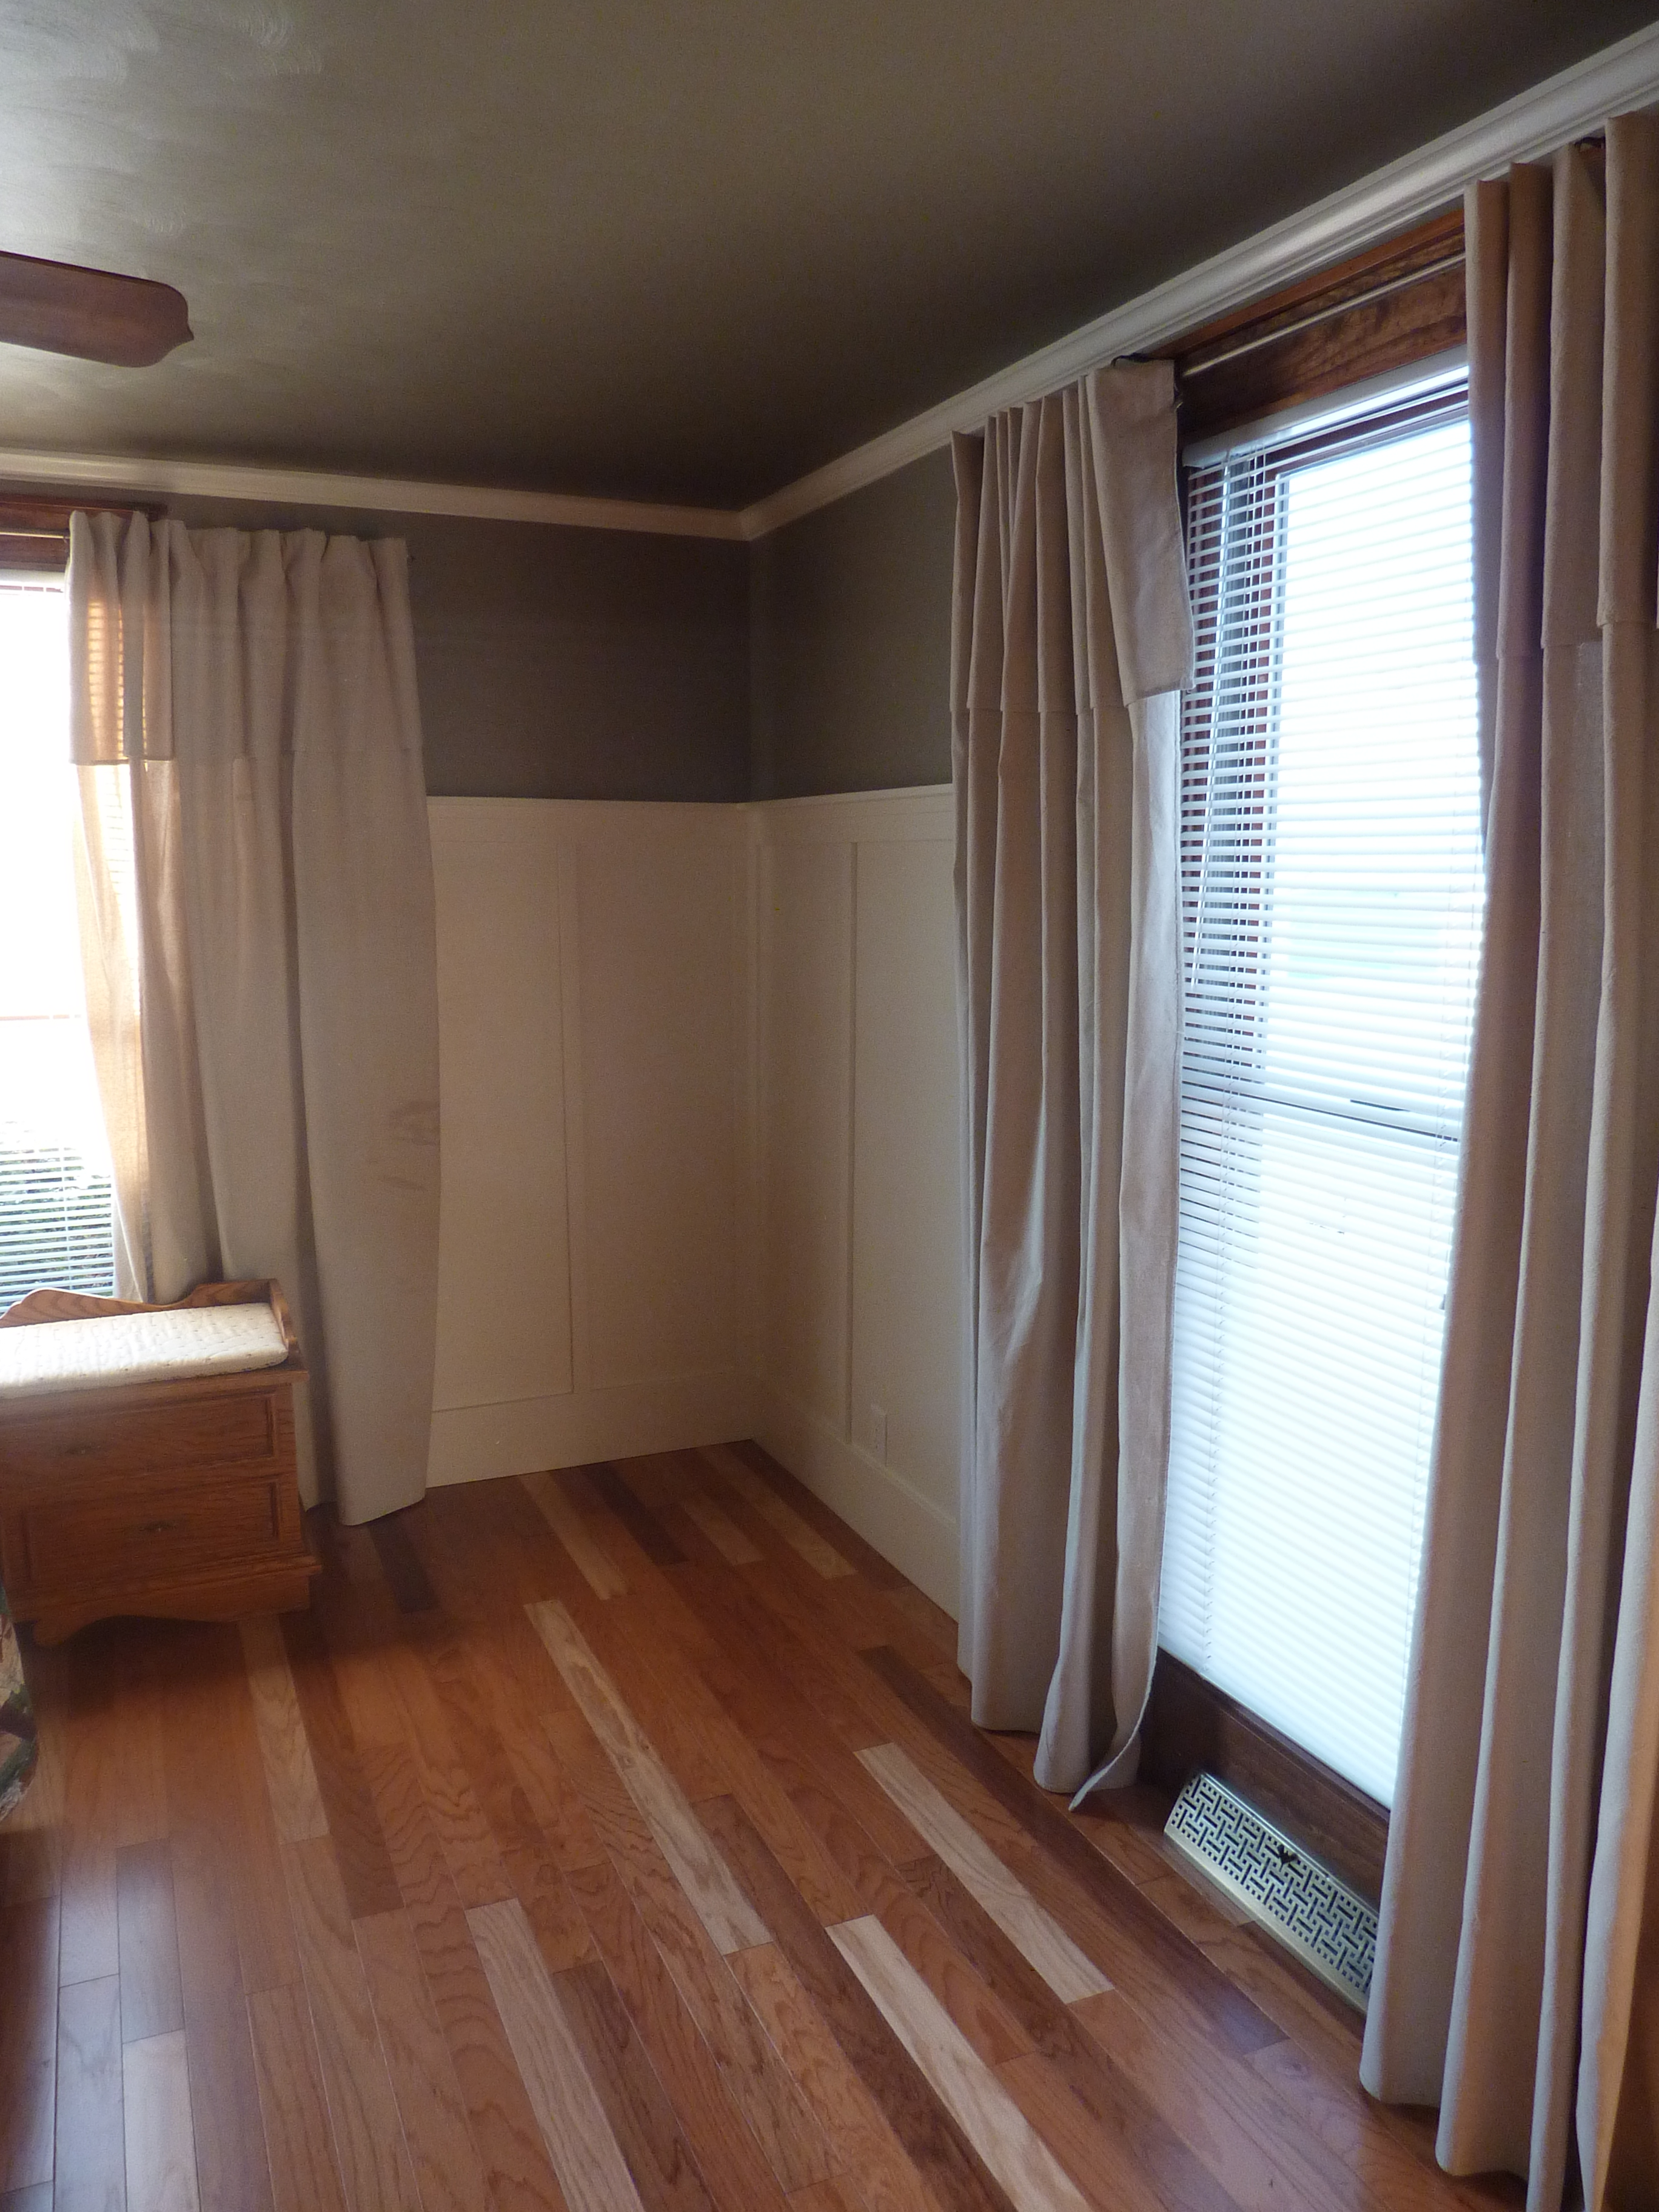 dropcloth curtains with board and batten and crown molding